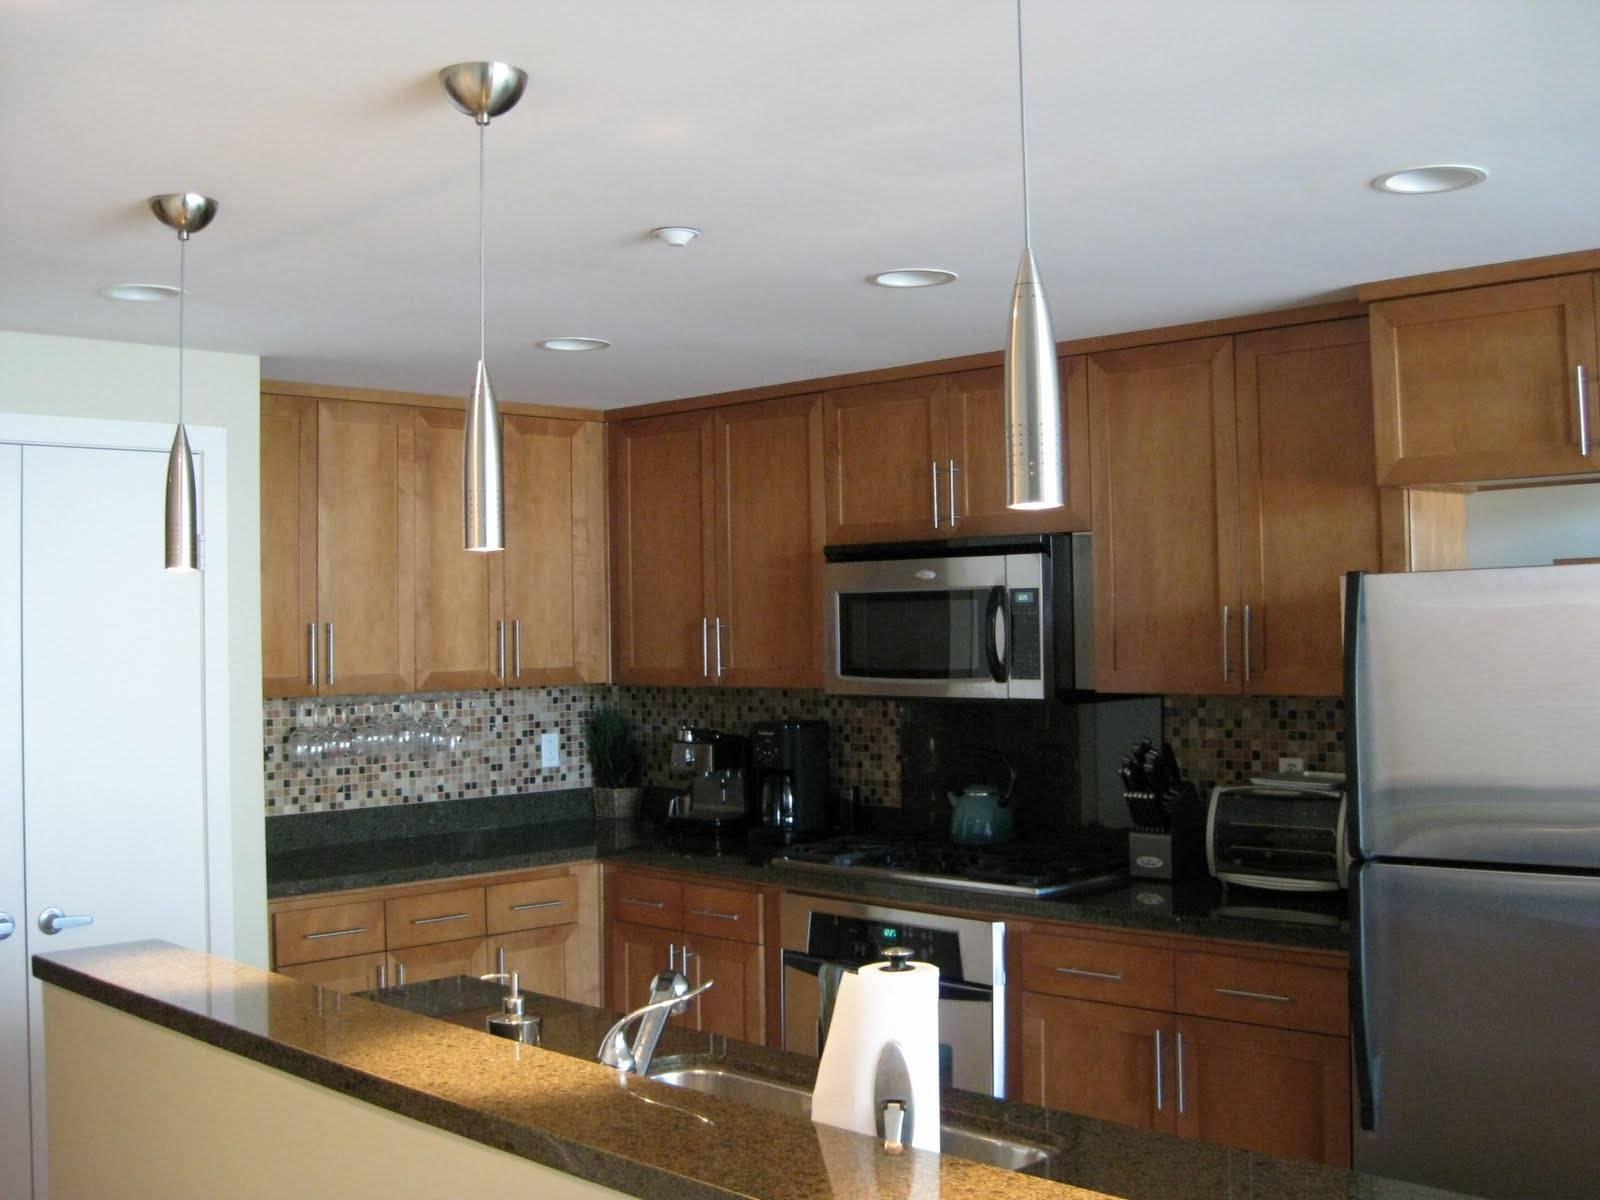 Great Pendant Light Fixtures For Kitchen Island — Decor Trends within Stainless Steel Kitchen Pendant Lights (Image 3 of 15)